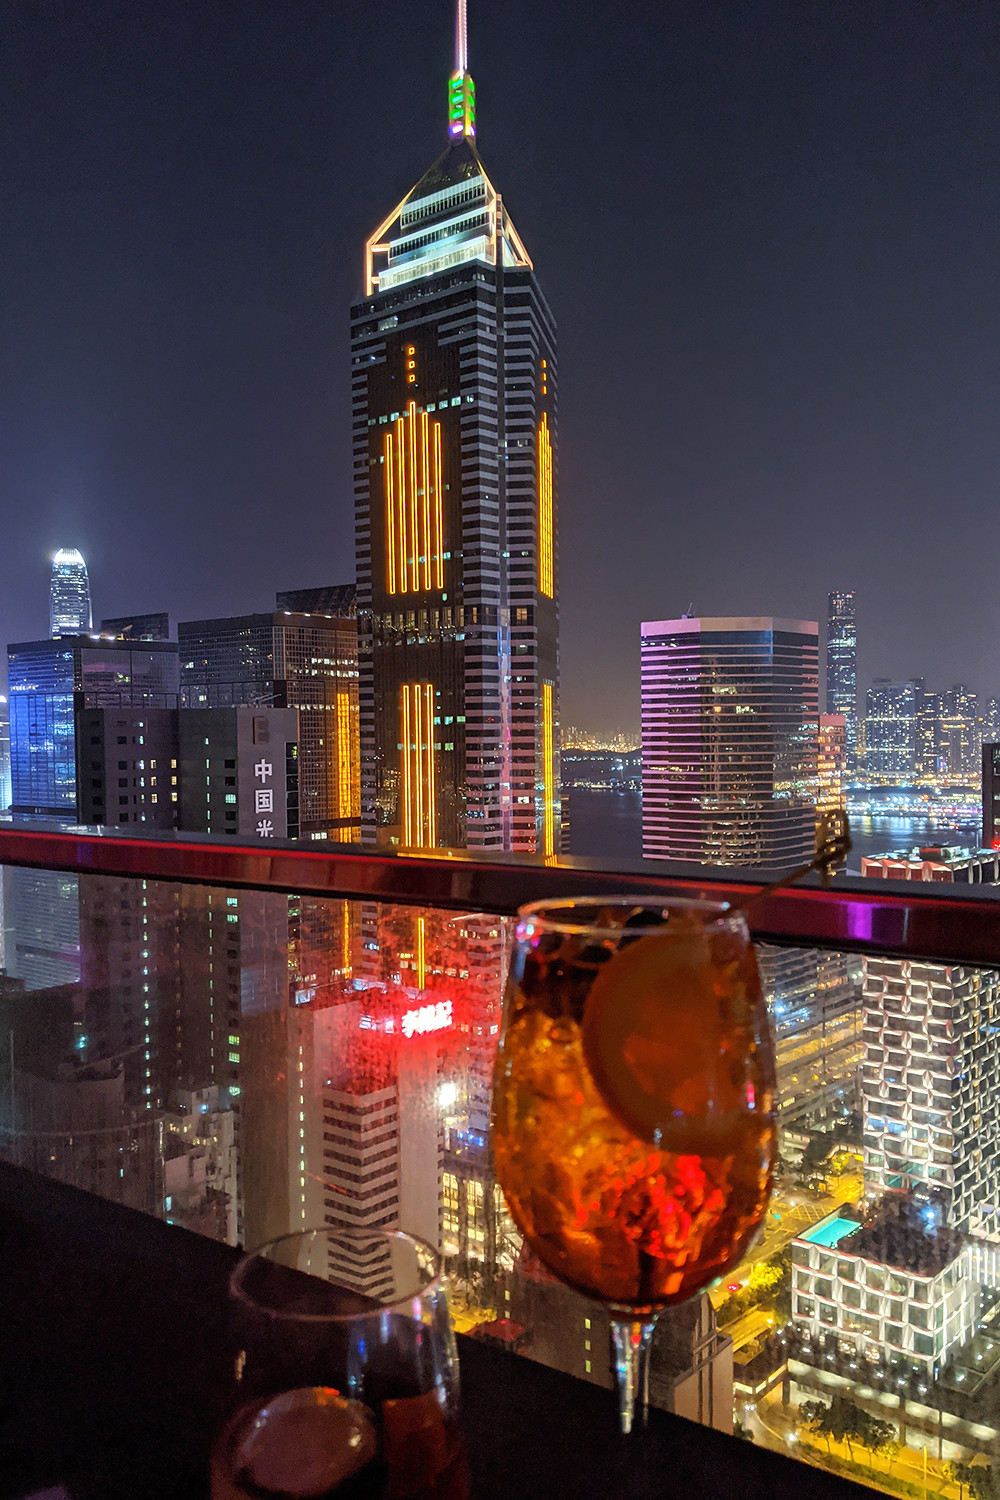 15hongkong-night-cityscape-rooftop-travel